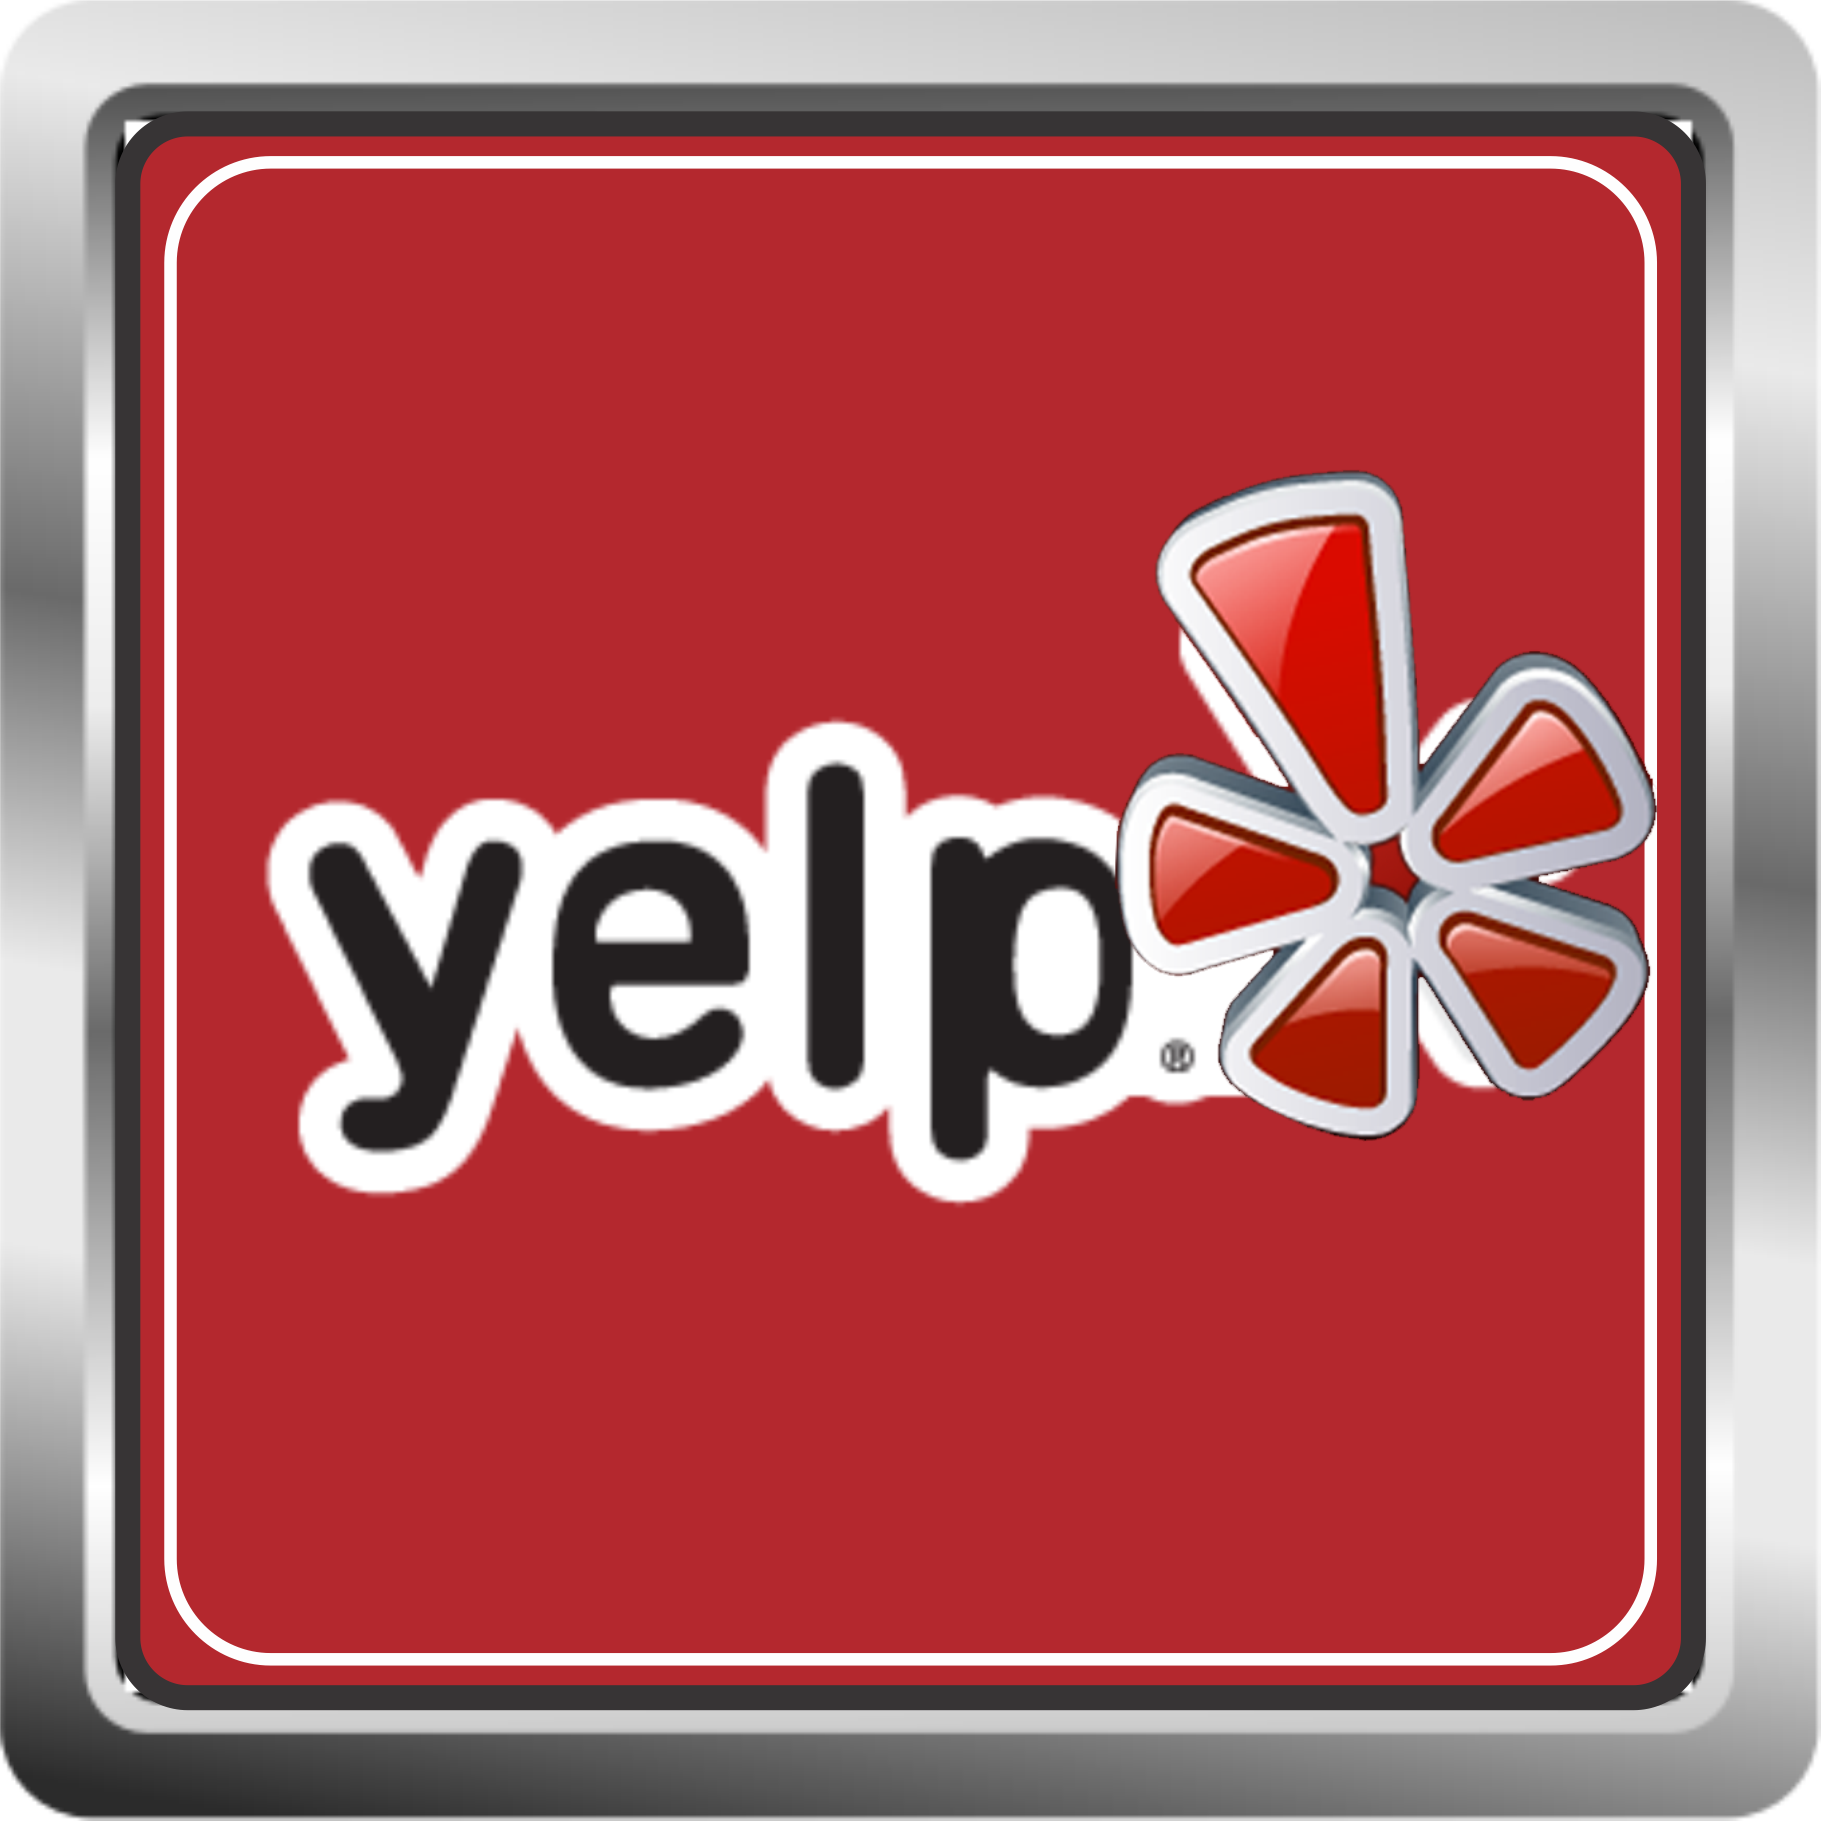 YELP - Customer Reviews